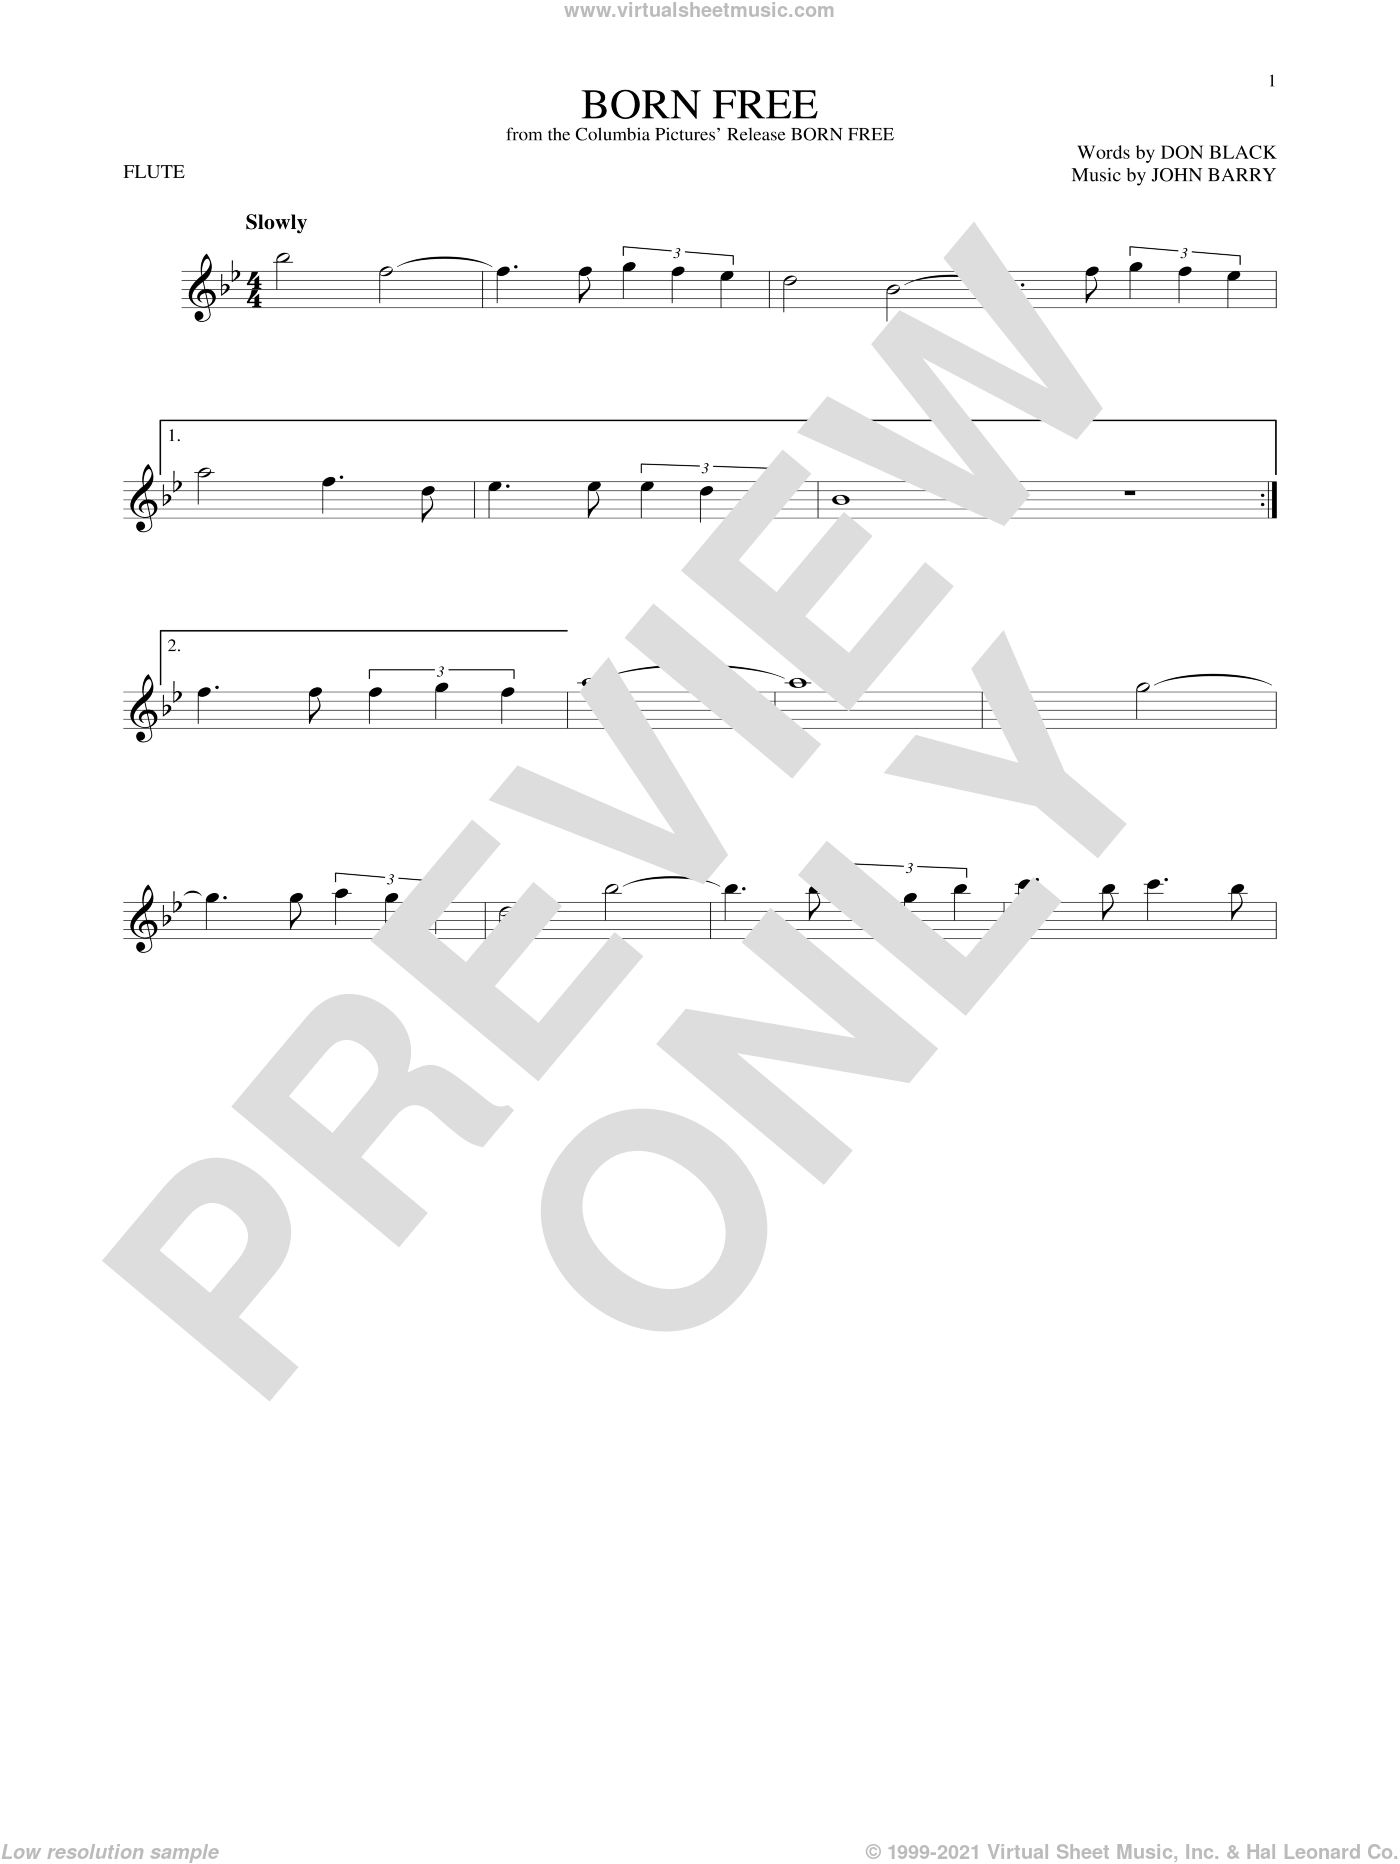 Born Free sheet music for flute solo by Don Black, Roger Williams and John Barry. Score Image Preview.